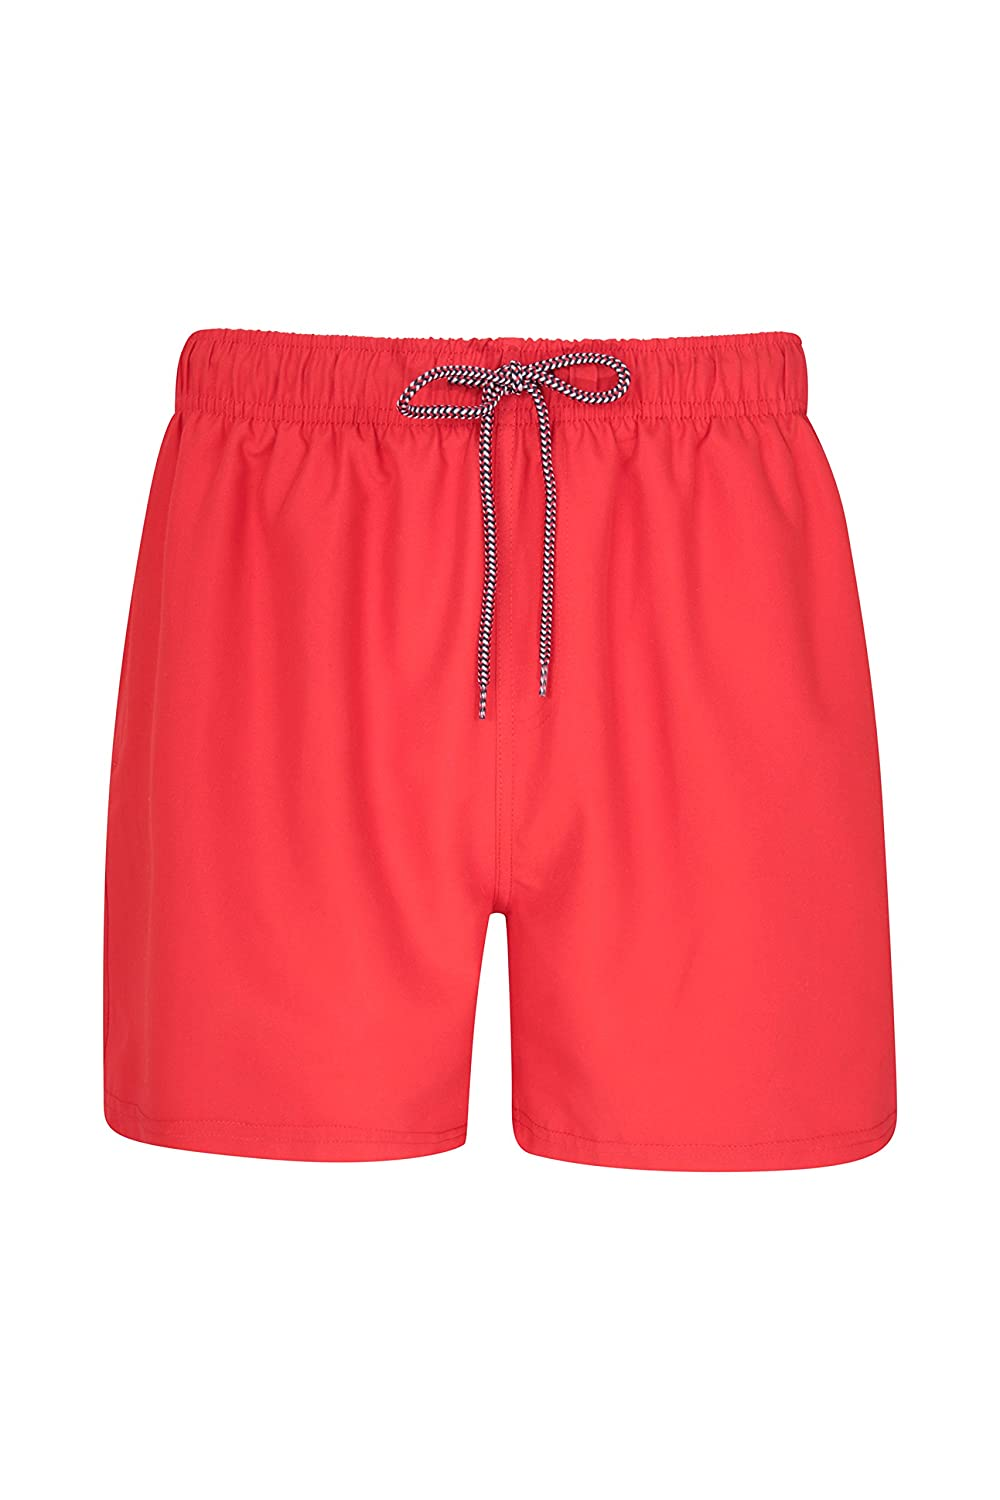 Mountain Warehouse Aruba Mens Swim Shorts - Beach Swimming Trunks